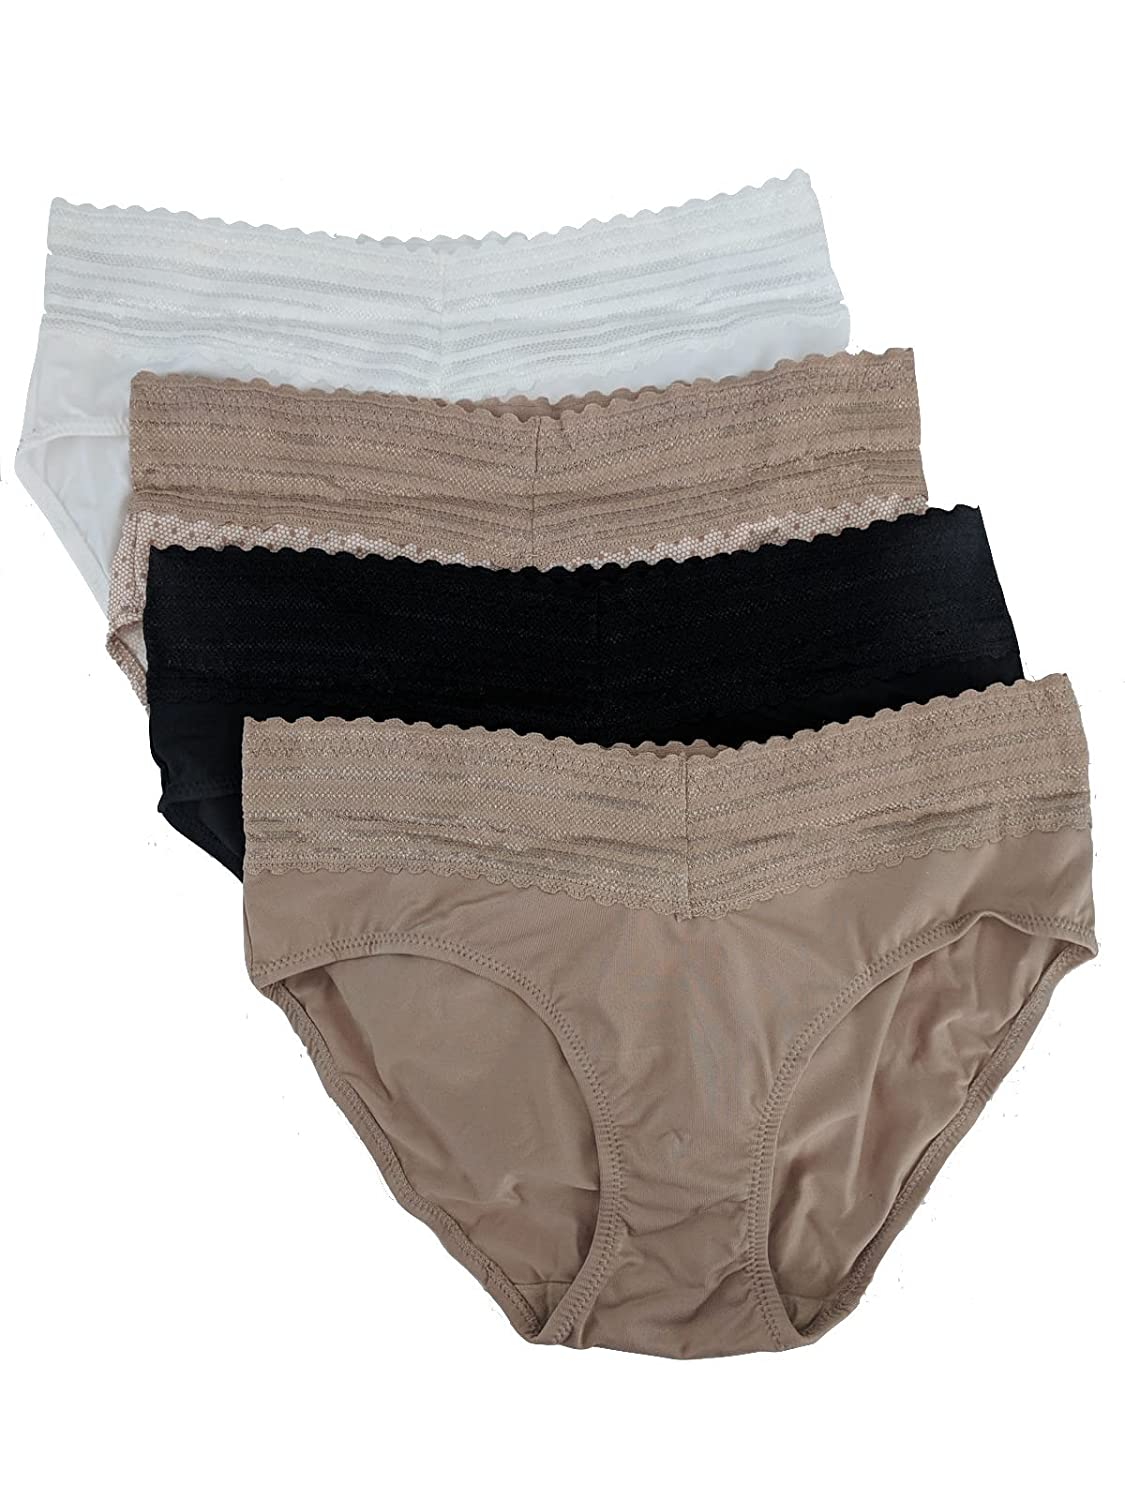 b7593435f954 Panties 5609S4 Women Warners Womens No Pinches No Problems Hipster Panty  4-Pack Warner's Women's IA